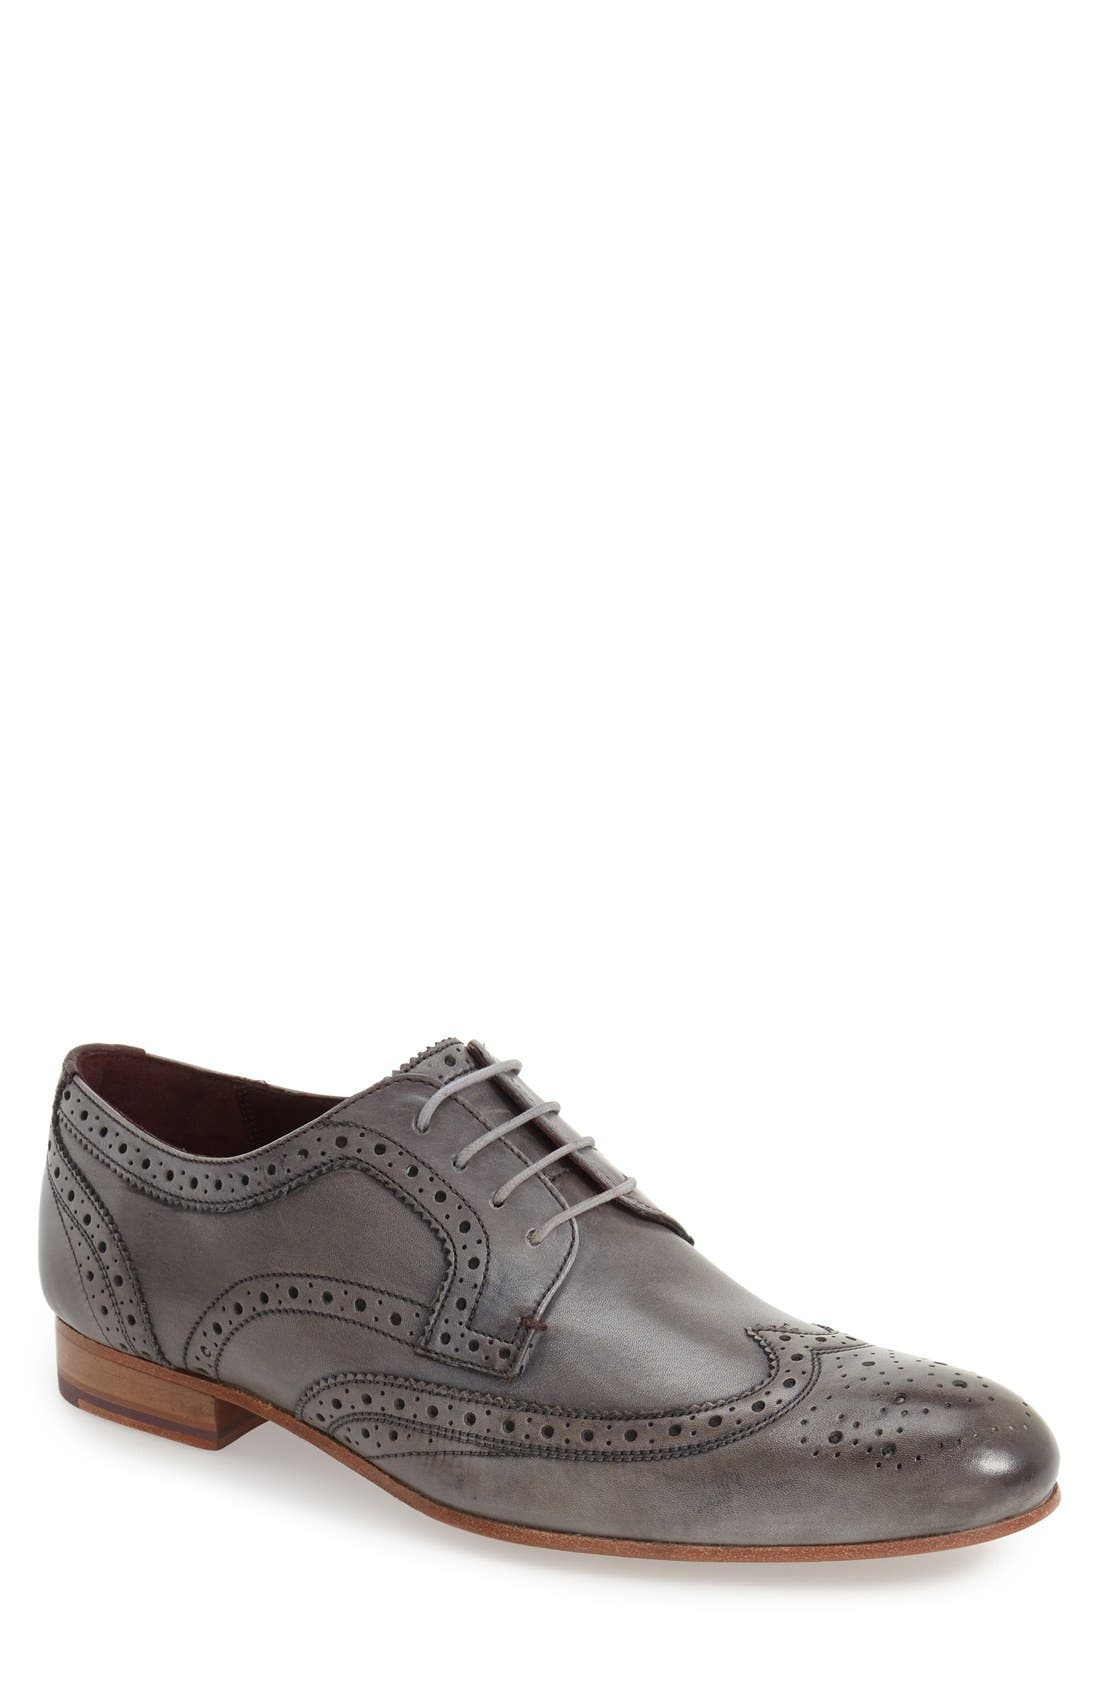 'Gryene' Wingtip Oxford,                         Main,                         color, 020